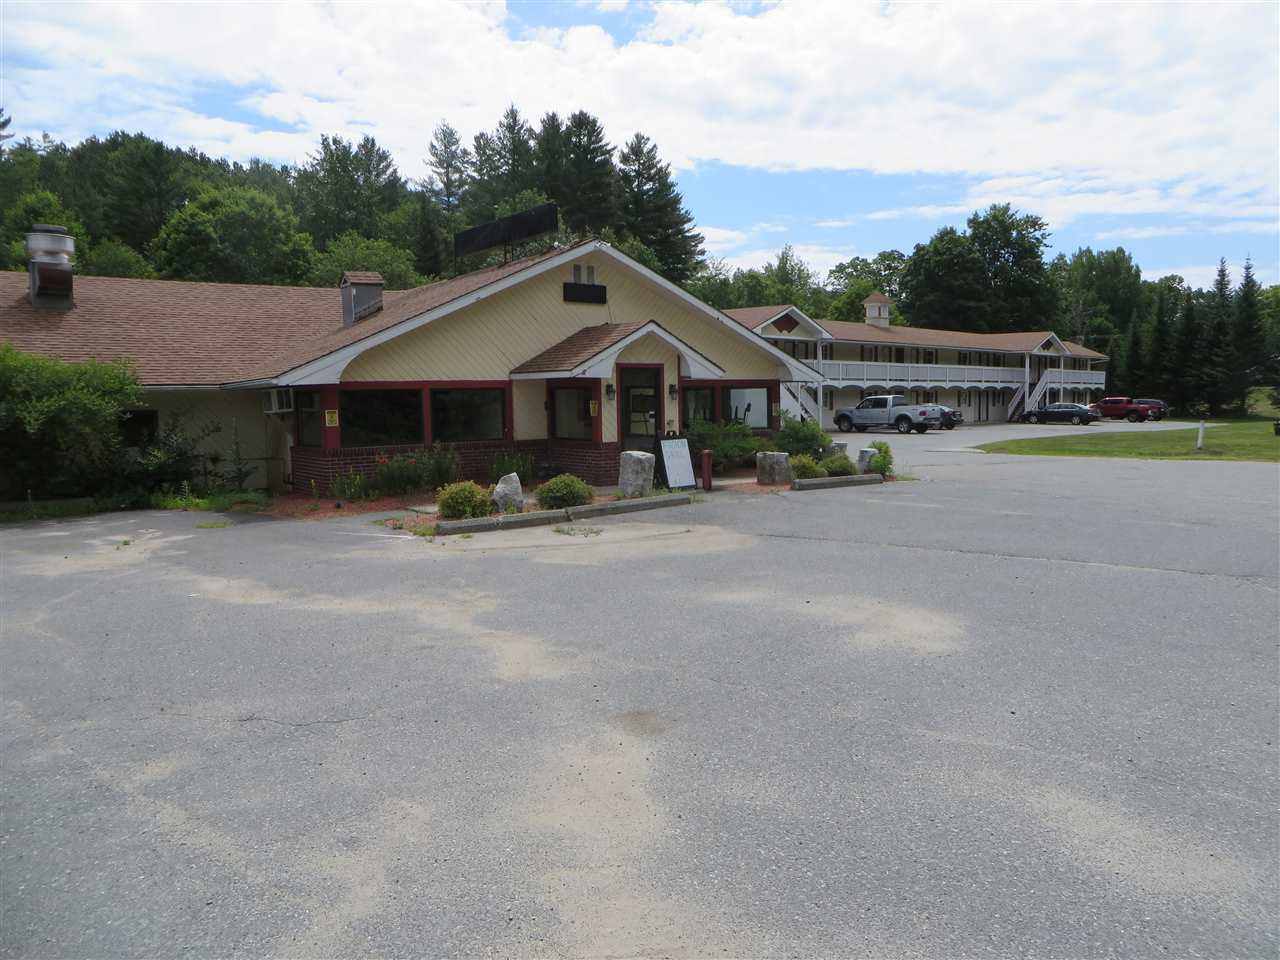 primary photo for 4992 Memorial Drive, Lyndon, VT 05851, US